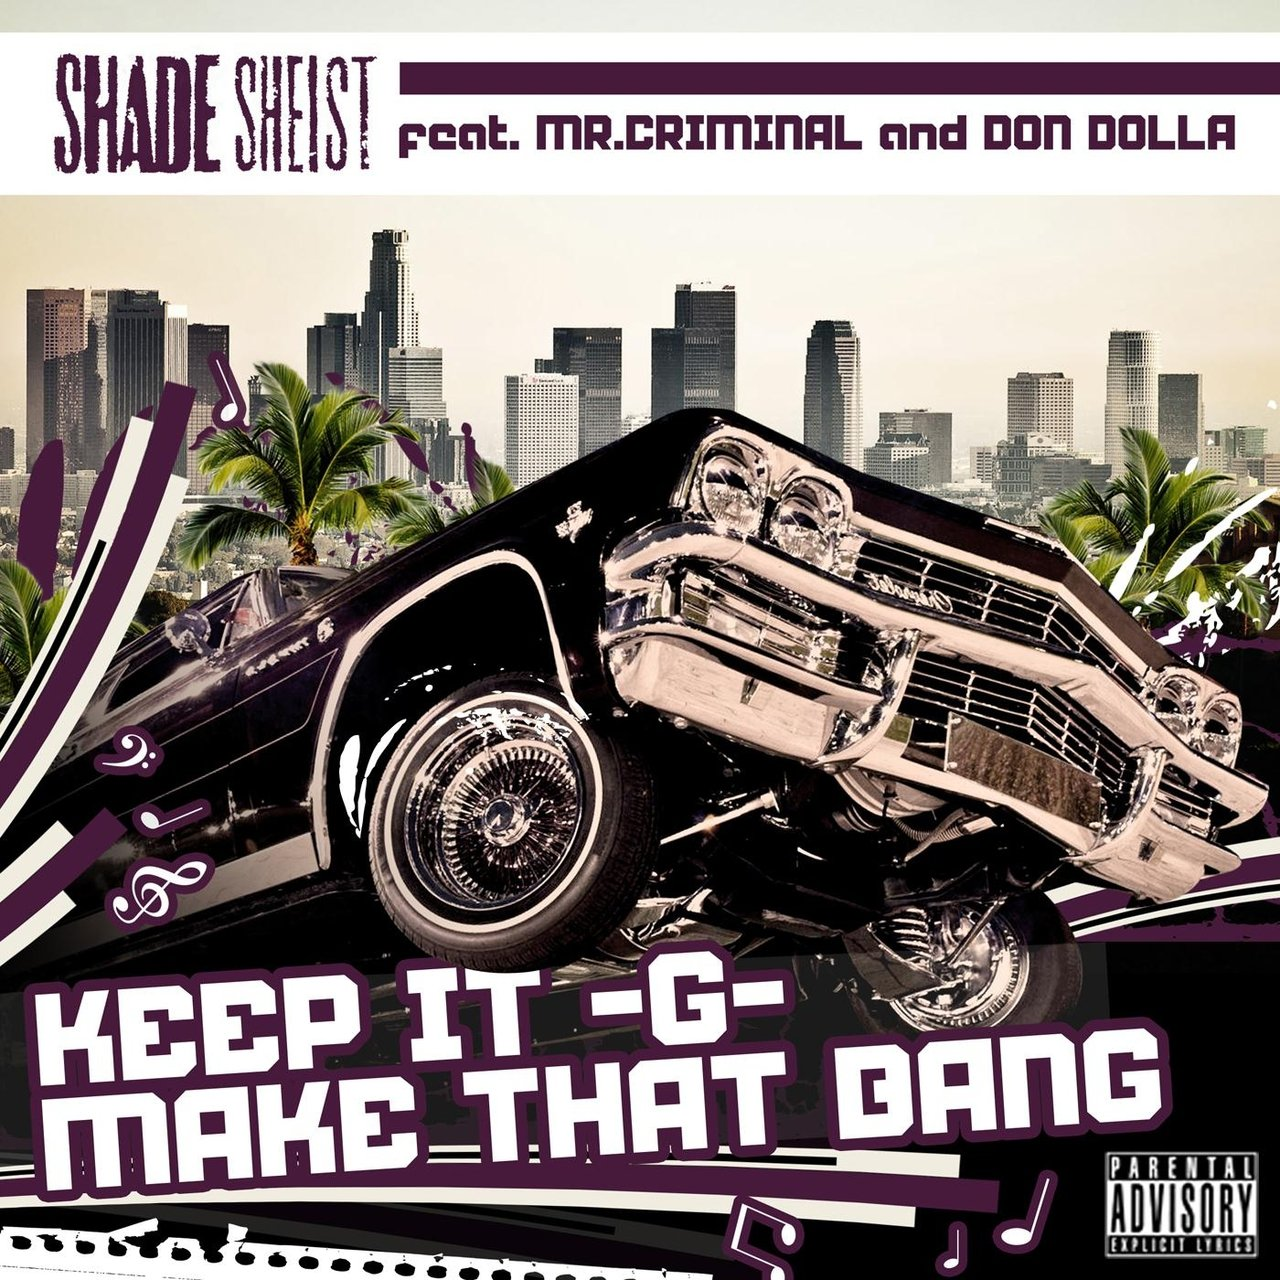 Keep It G... Make That Bang (feat. Mr. Criminal & Don Dolla)